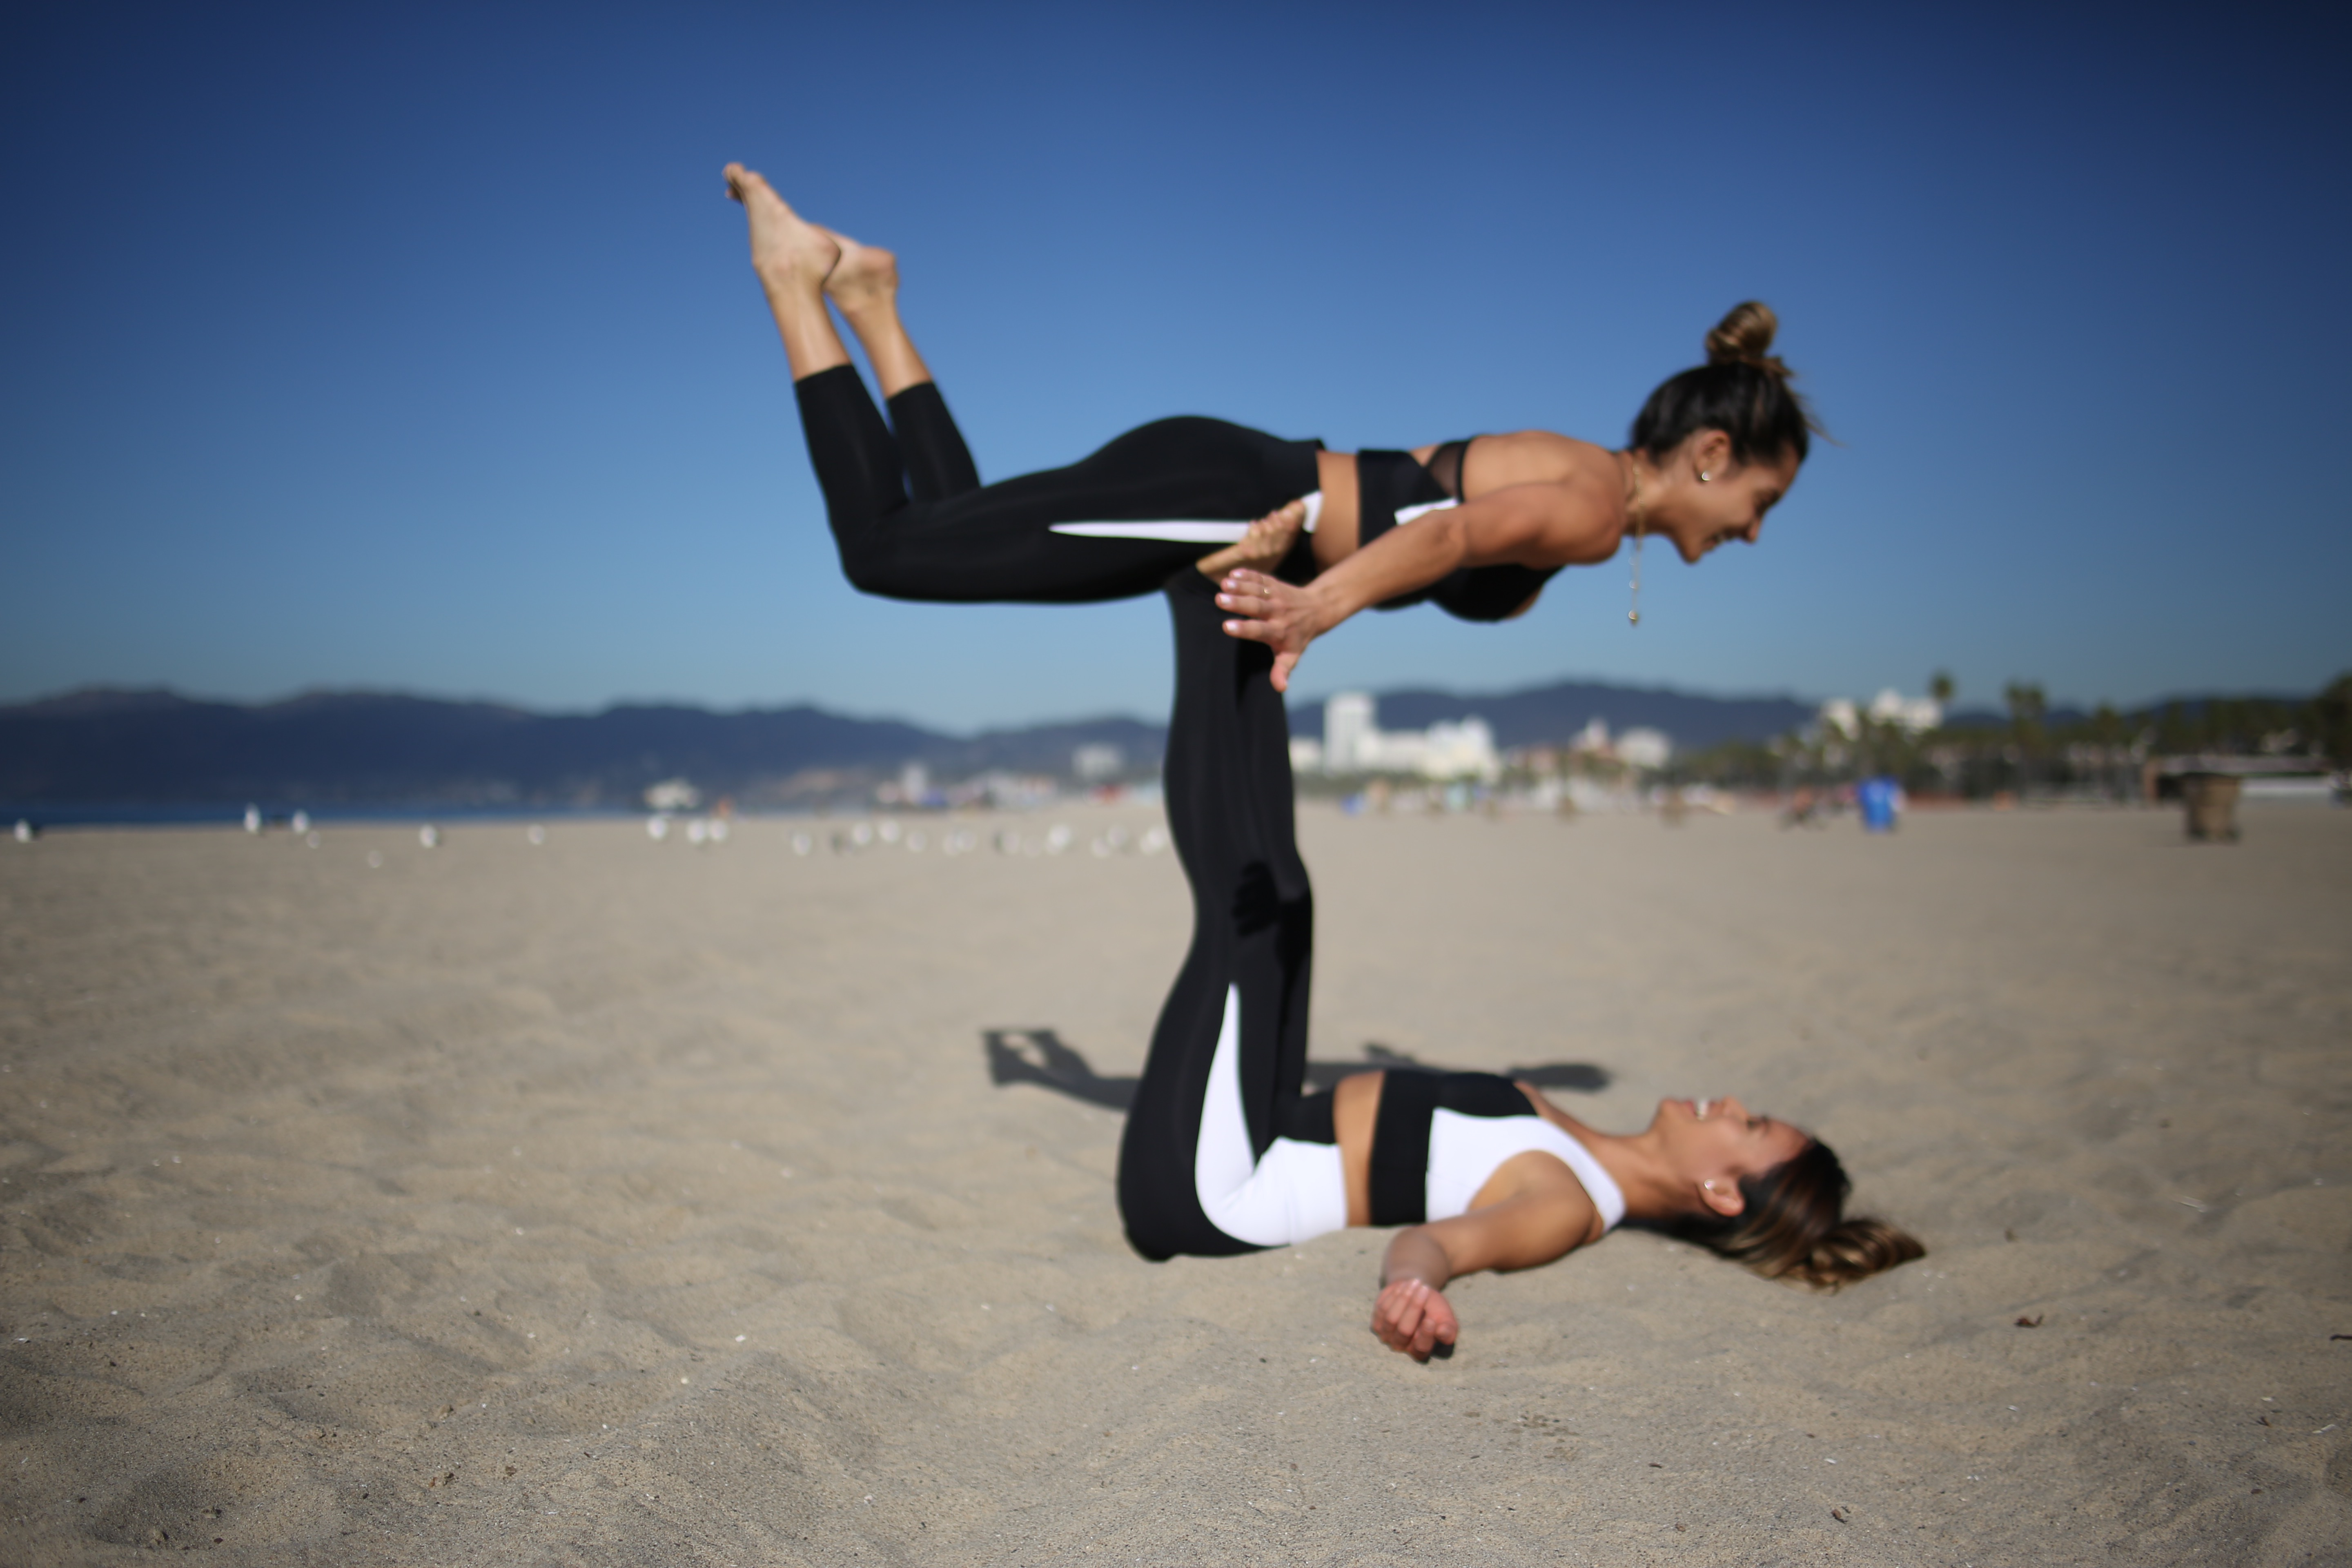 3 Partner Yoga Poses To Try With Your Friends Or Family